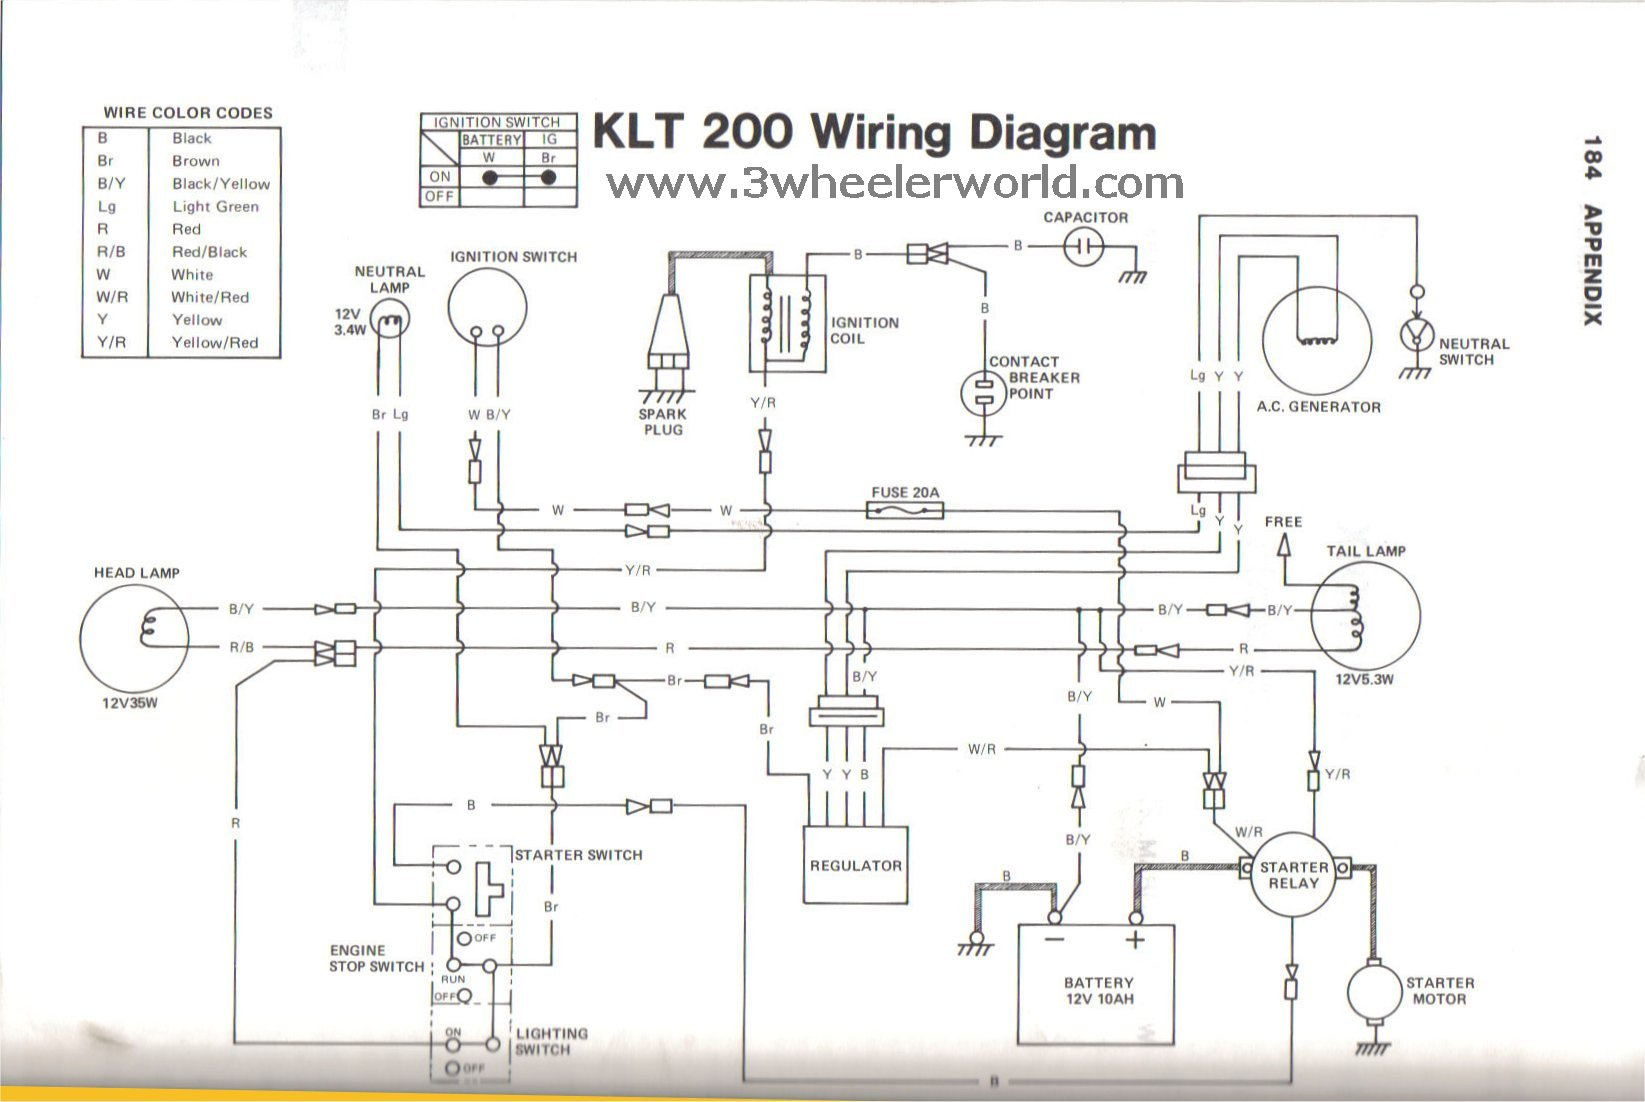 3 wheeler world tech help kawasaki wiring diagrams. Black Bedroom Furniture Sets. Home Design Ideas